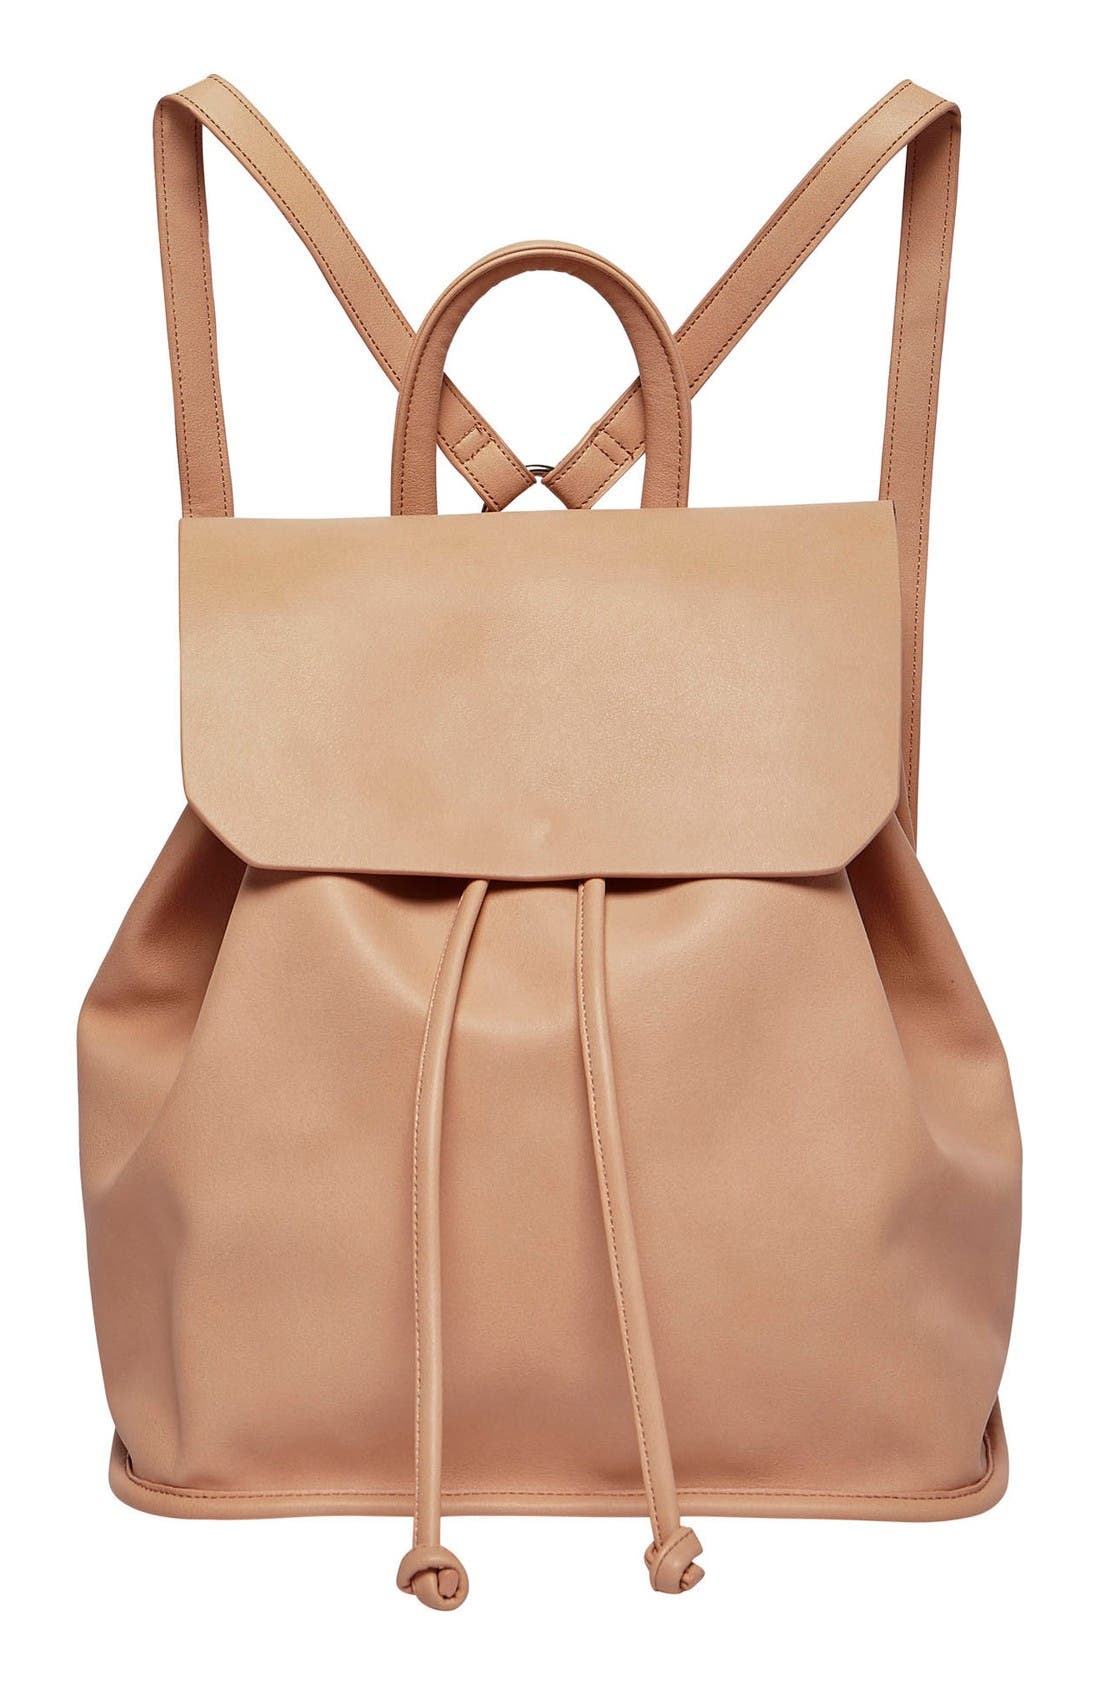 Main Image - Urban Originals Midnight Faux Leather Flap Backpack